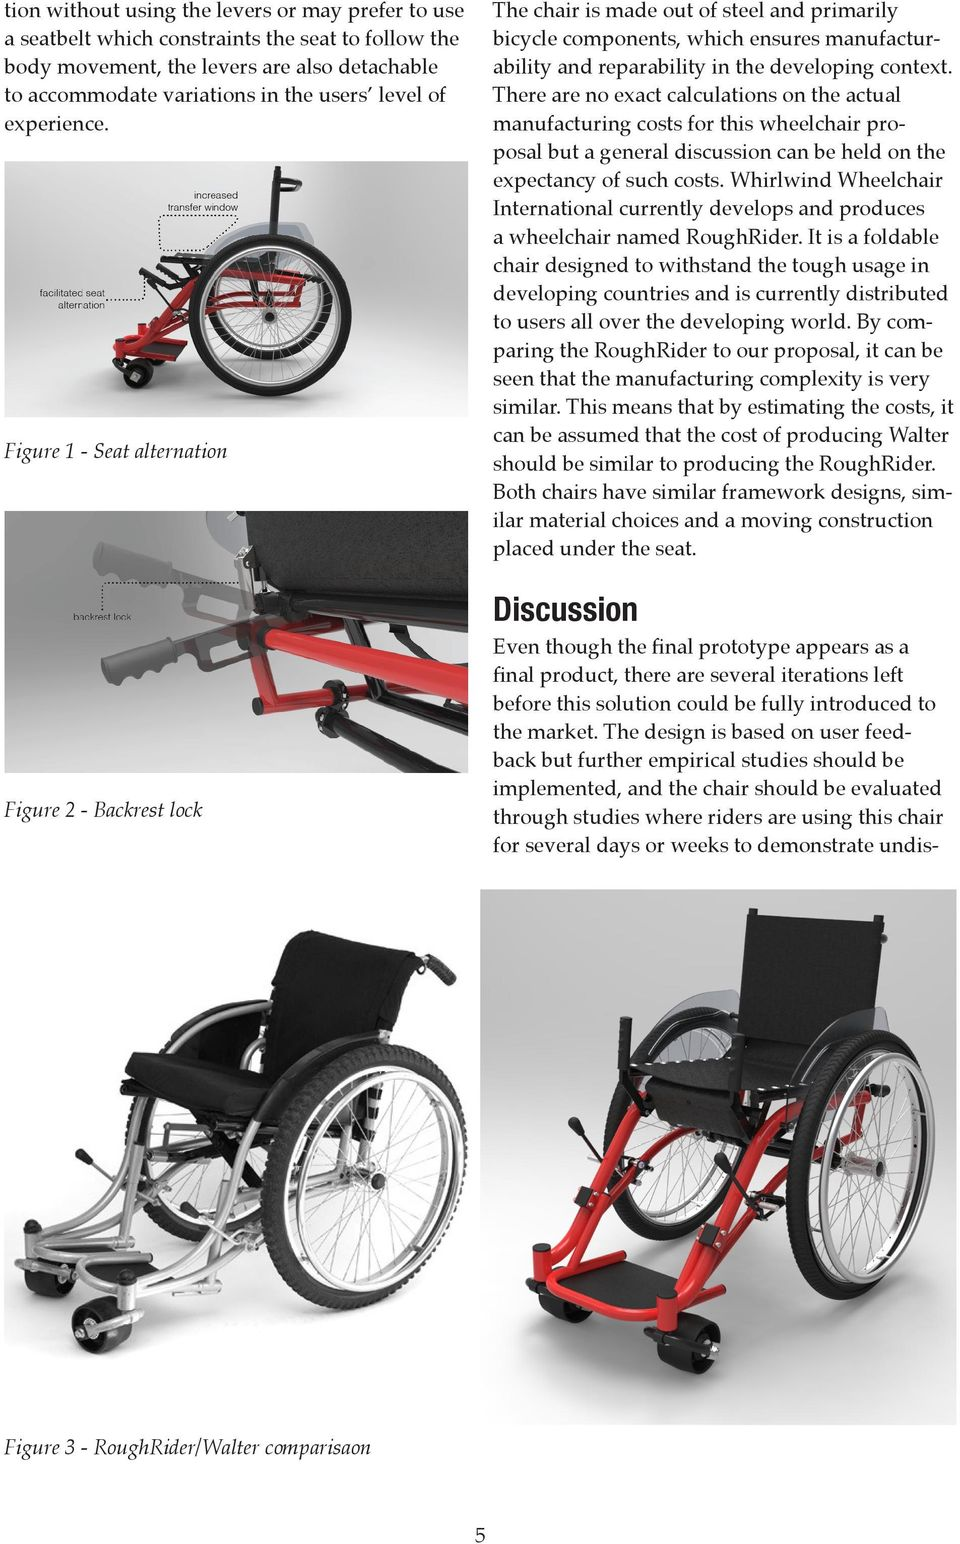 Figure 1 - Seat alternation Figure 2 - Backrest lock The chair is made out of steel and primarily bicycle components, which ensures manufacturability and reparability in the developing context.